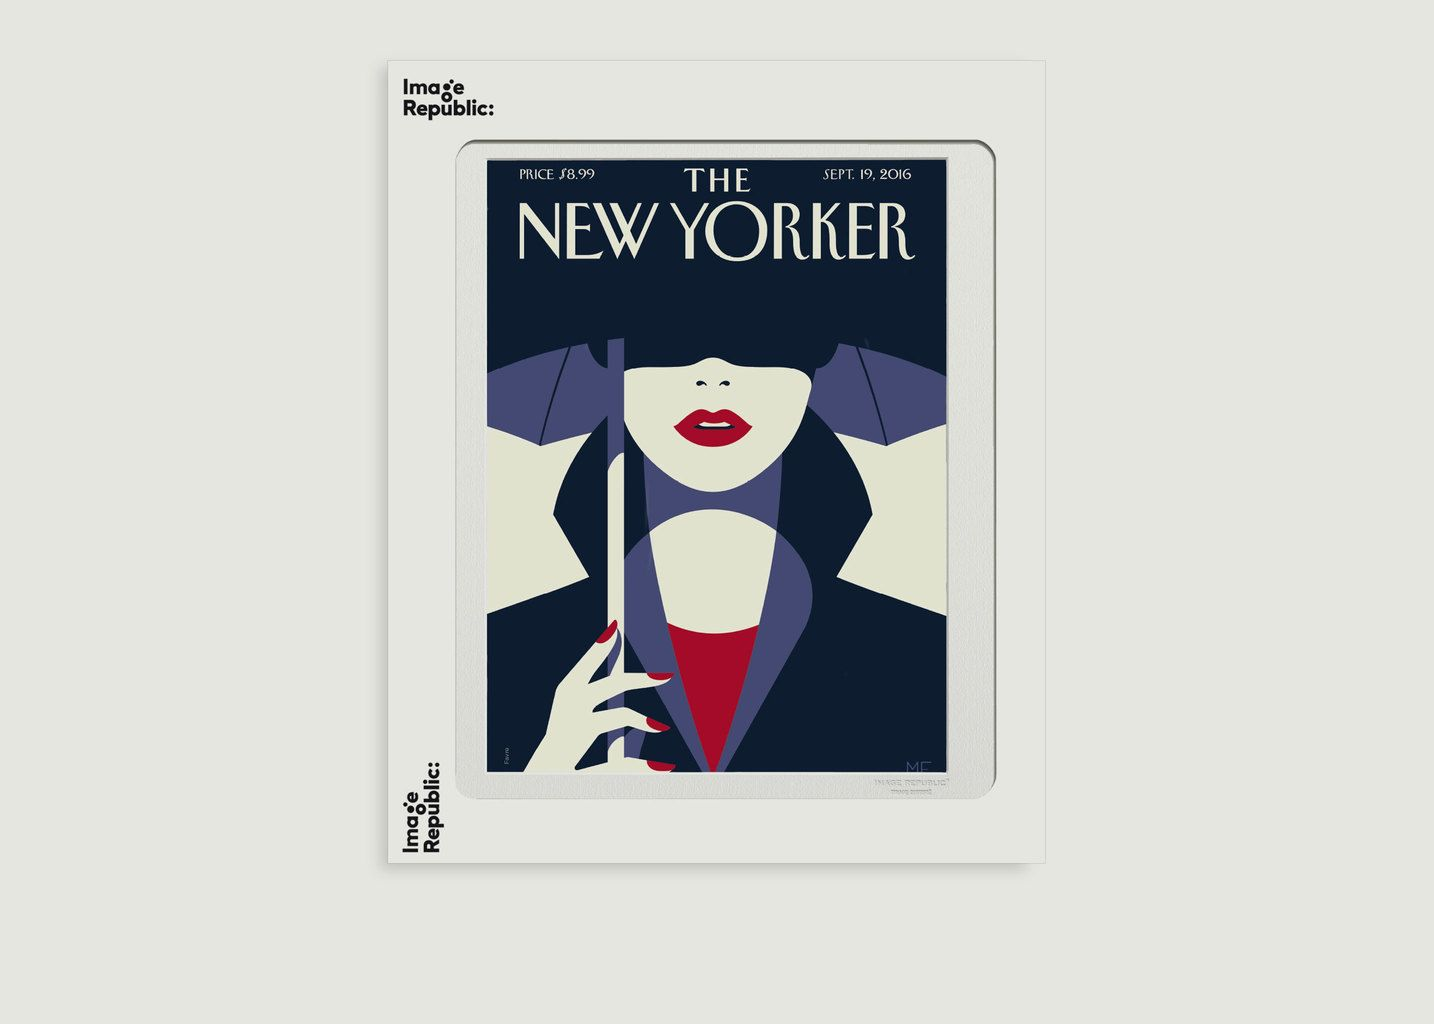 Affiche The New Yorker 85 Favre In The Shade - Image Republic